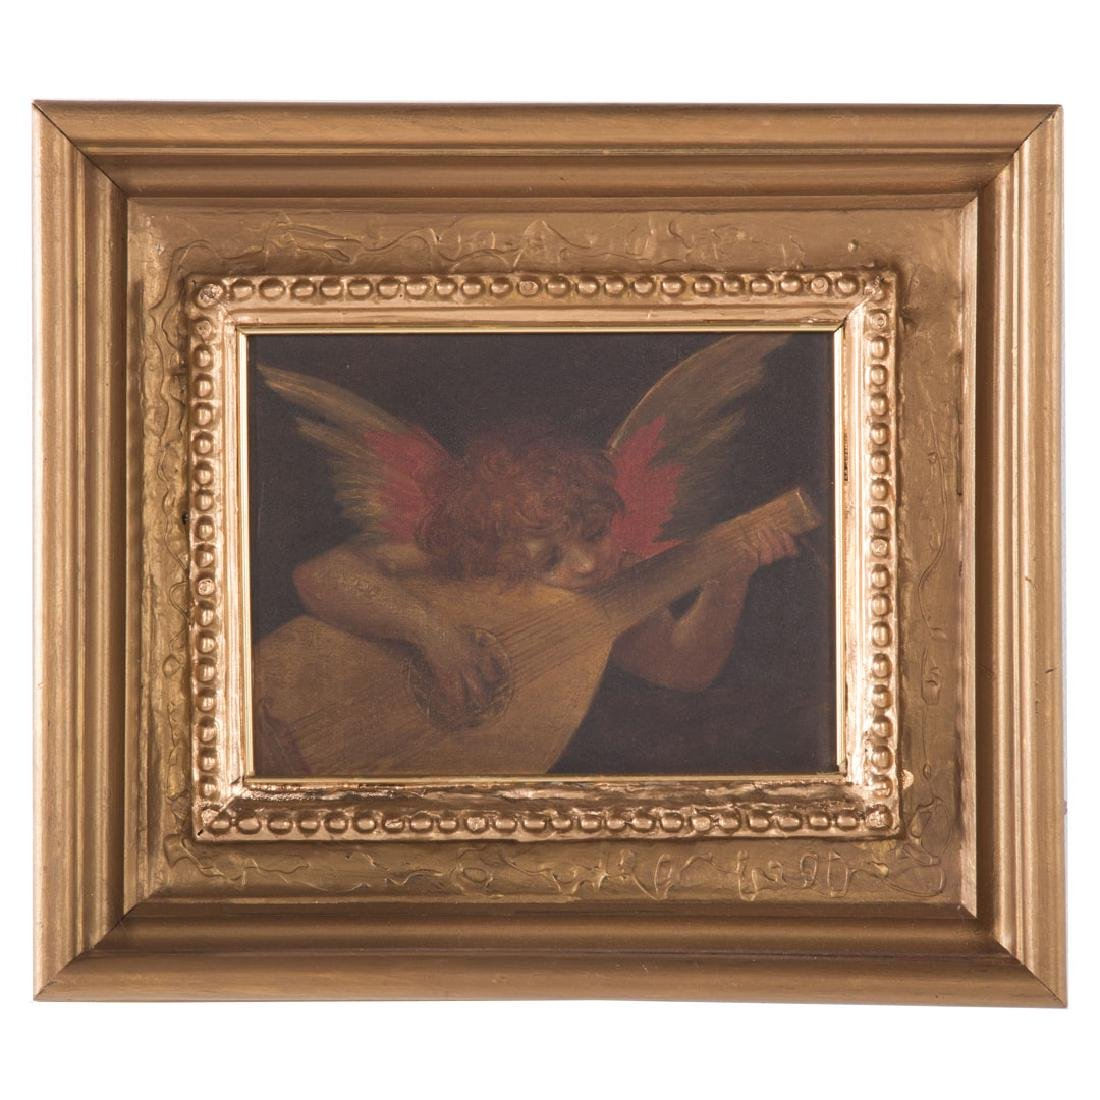 A.S. Martelli. Angel Playing Lute, oil on canvas